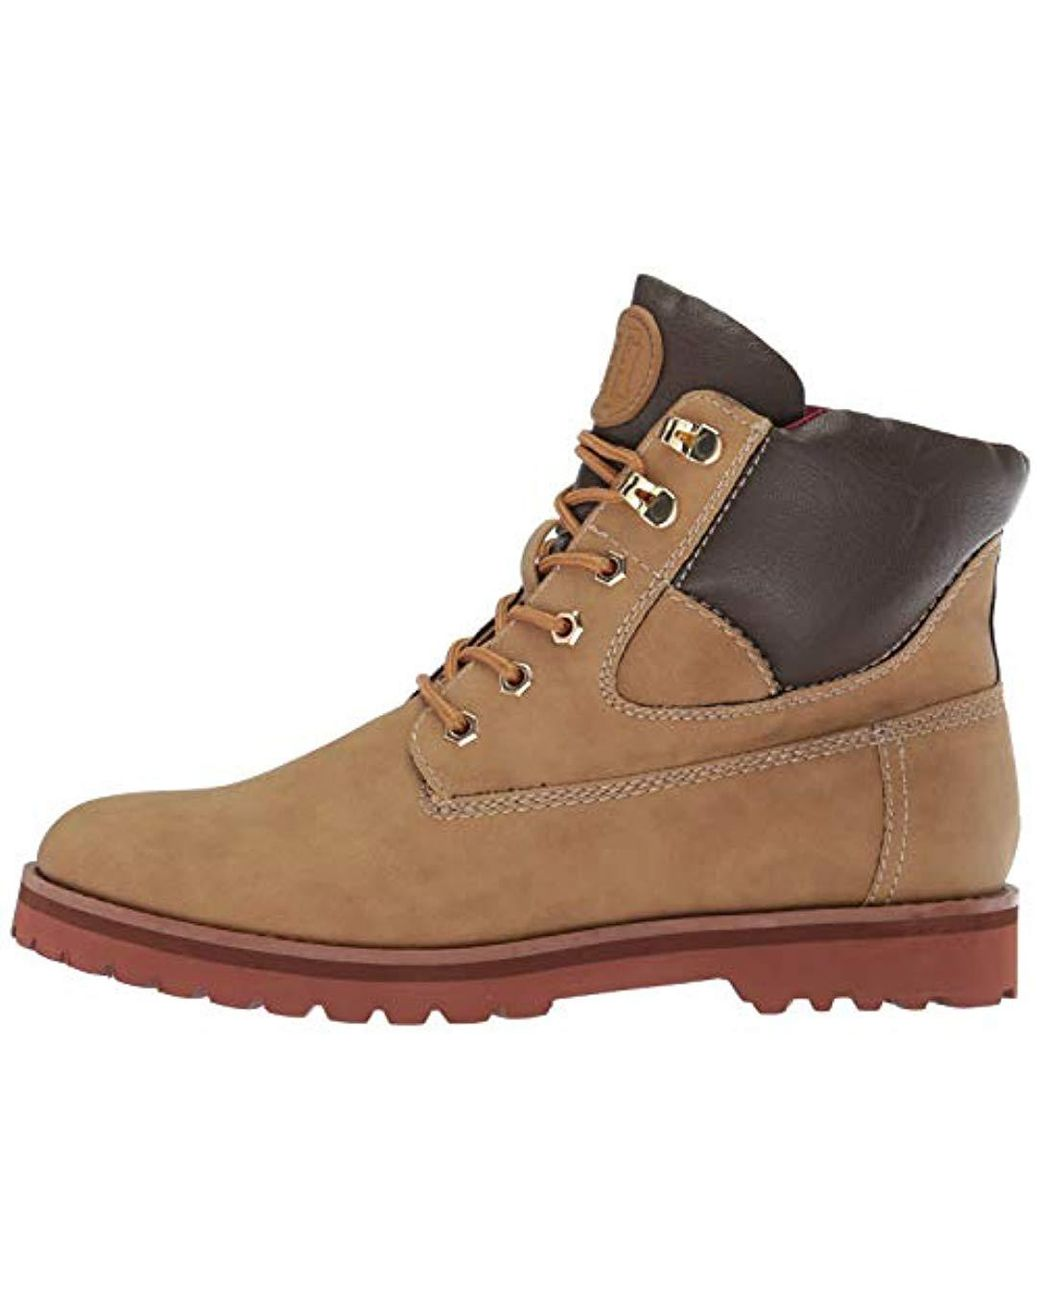 8b97199fe Lyst - Tommy Hilfiger Poma Combat Boot in Natural